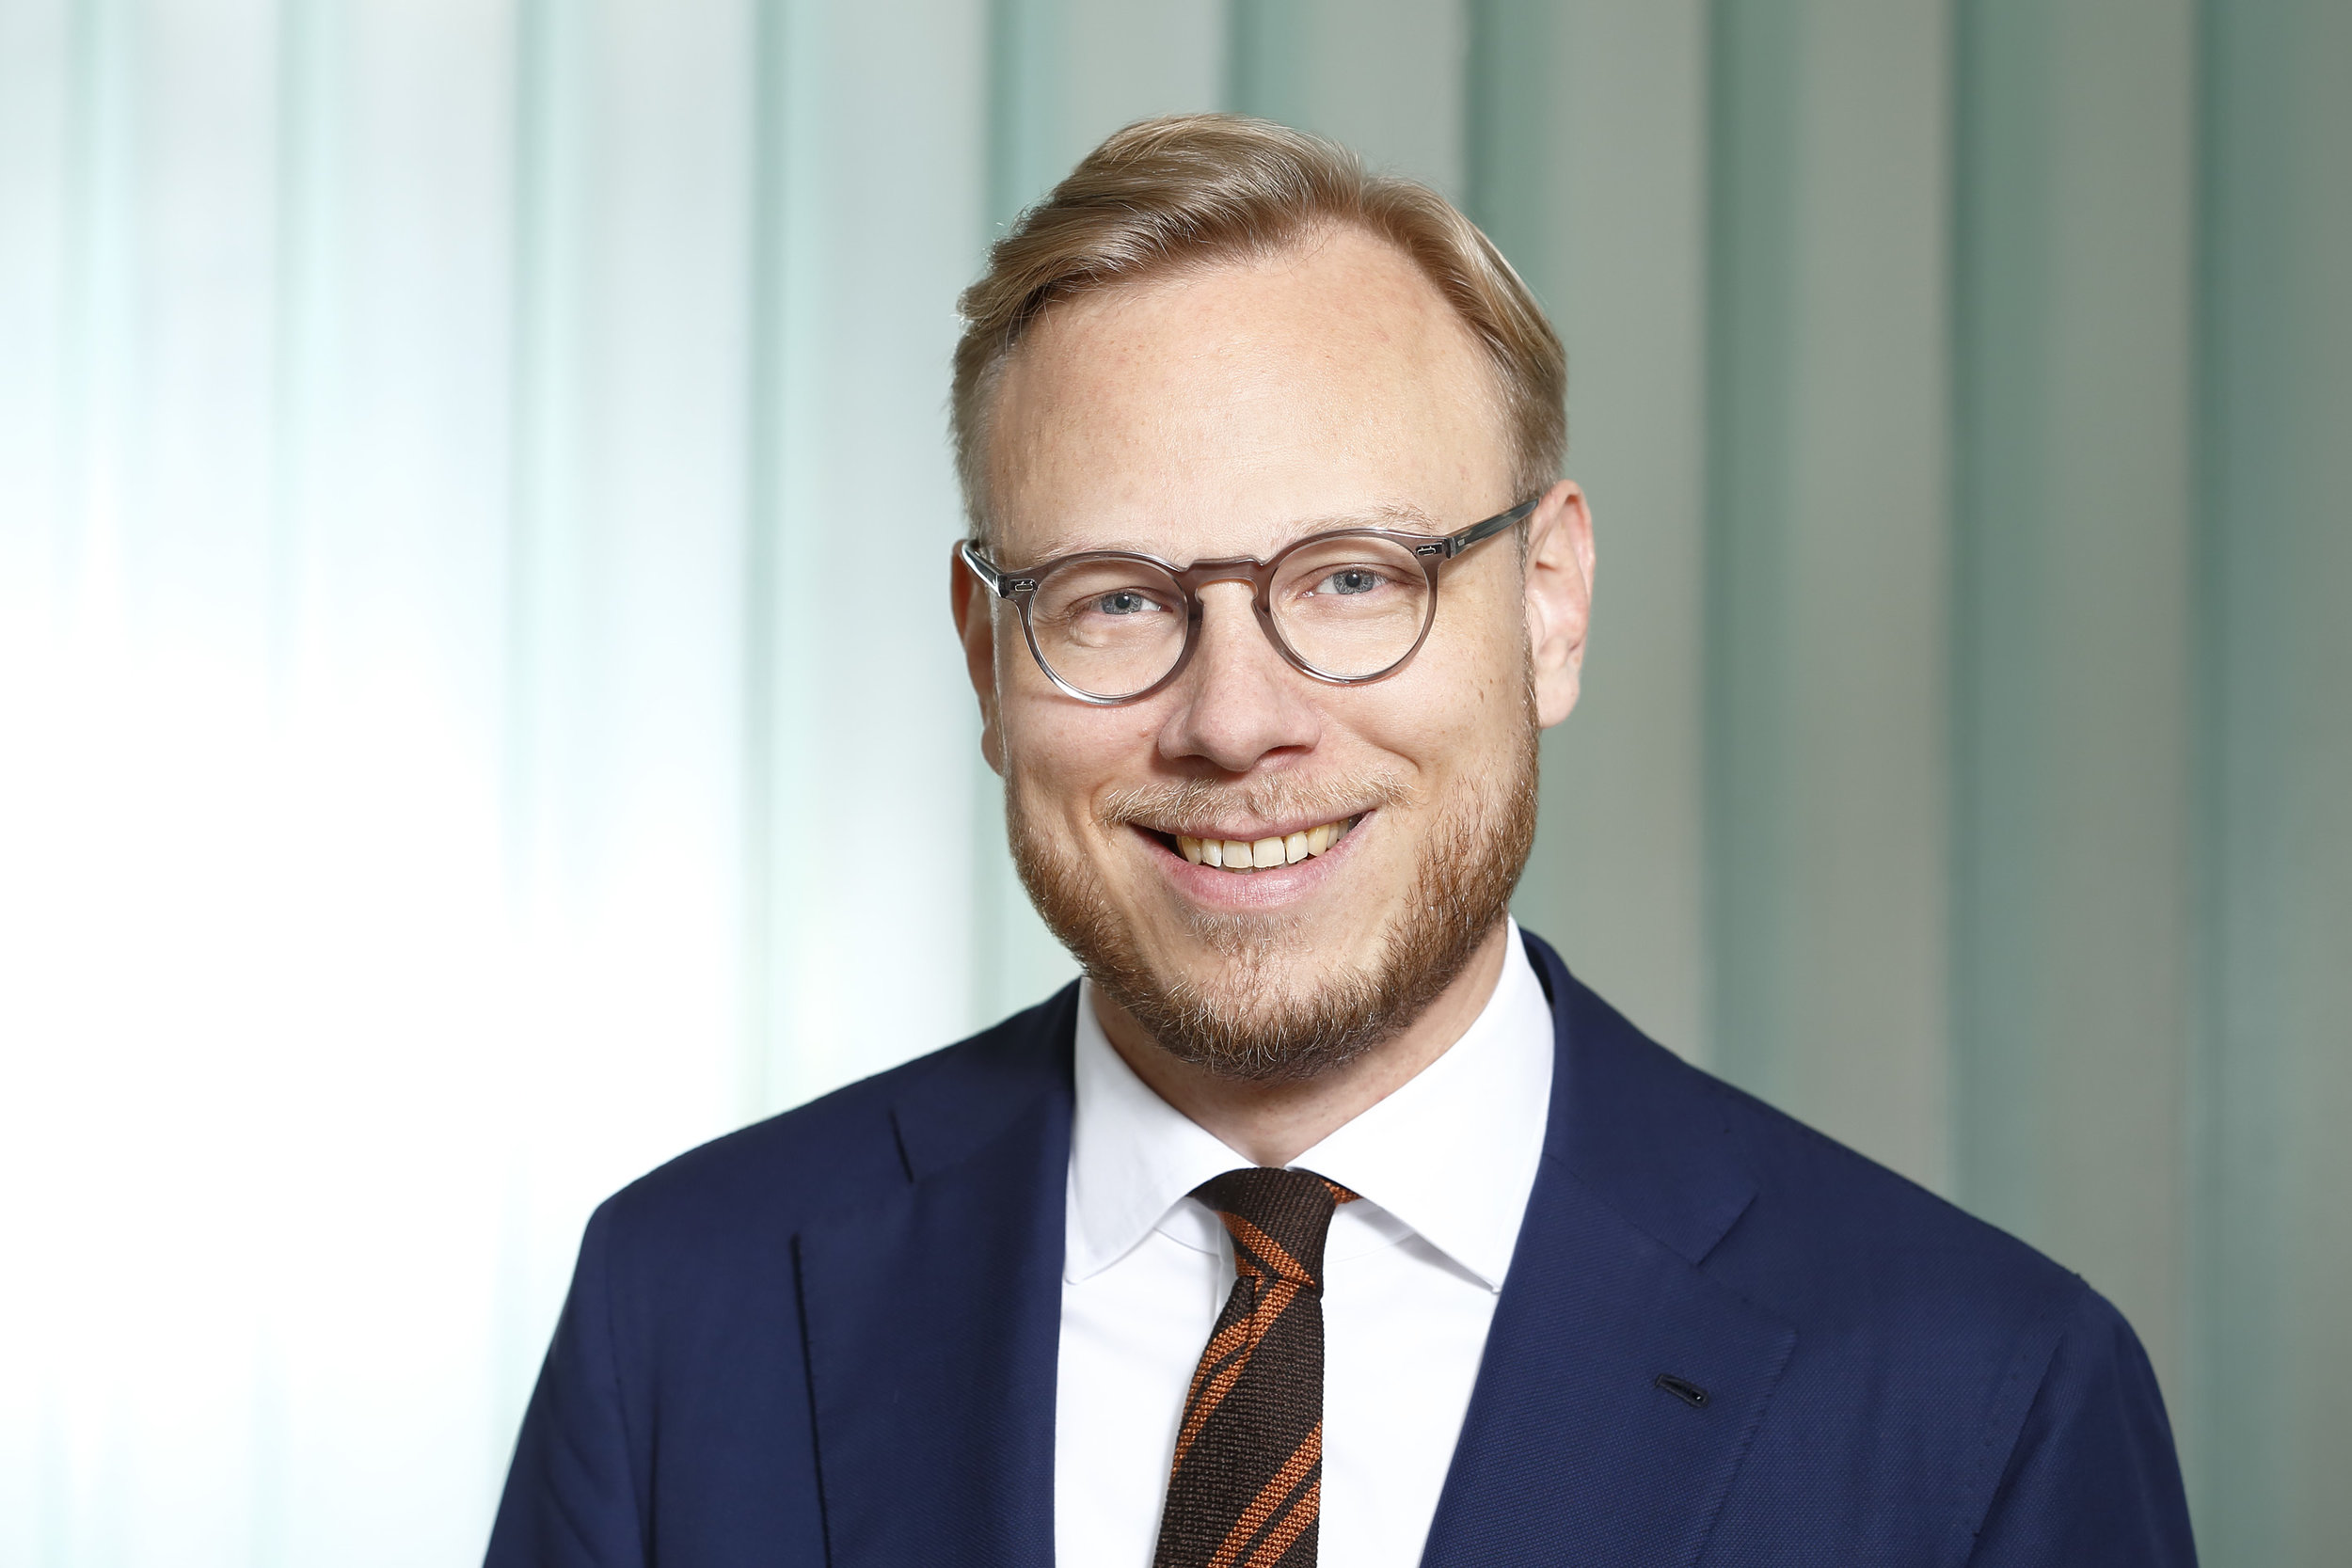 Benjamin Lüders - Dr. Benjamin Lüders studied Law in Constance and Bologna and earned a doctor's degree from the University of Bremen. Since 2009 he is a Lawyer and since 2015 public notary in Hanover. As lawyer he is specialized in the area of company and commercial law and all topics related with the foundation, sale and transformation of all kind of companies.As an art interested he is a board member of the Kultur am Raschplatz e.V. an association that seeks to bring together law and art. Furthermore he is a member of the advisory board to the Kunstverein Hannover e.V.Being a Partner in the paternal law firm (Lüder Rechtsanwälte) he is actively involved in the process of taking over the business as well as digitalizing the company.